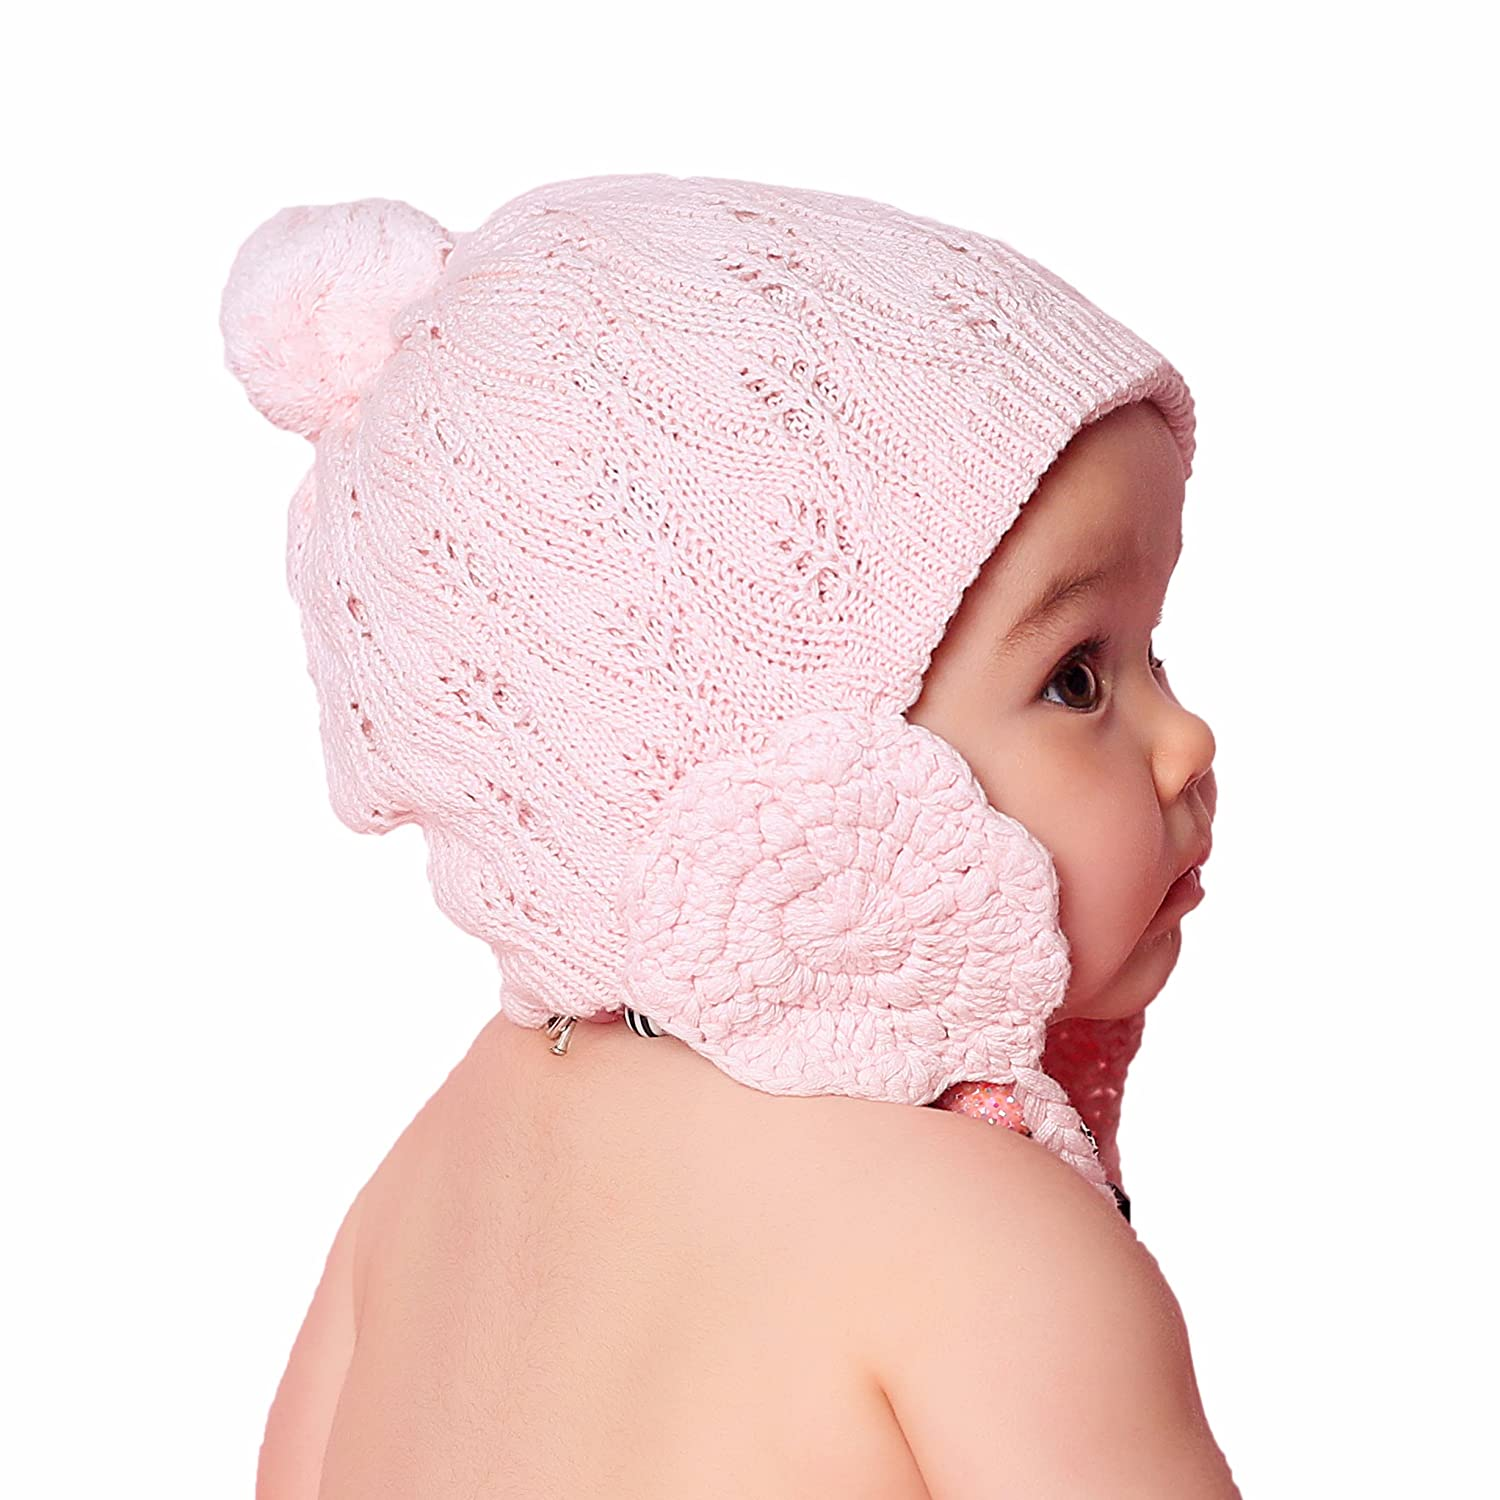 Huggalugs Baby and Toddler Girls Lacy Cotton Knit Beanie Hat in 2 Color Choices